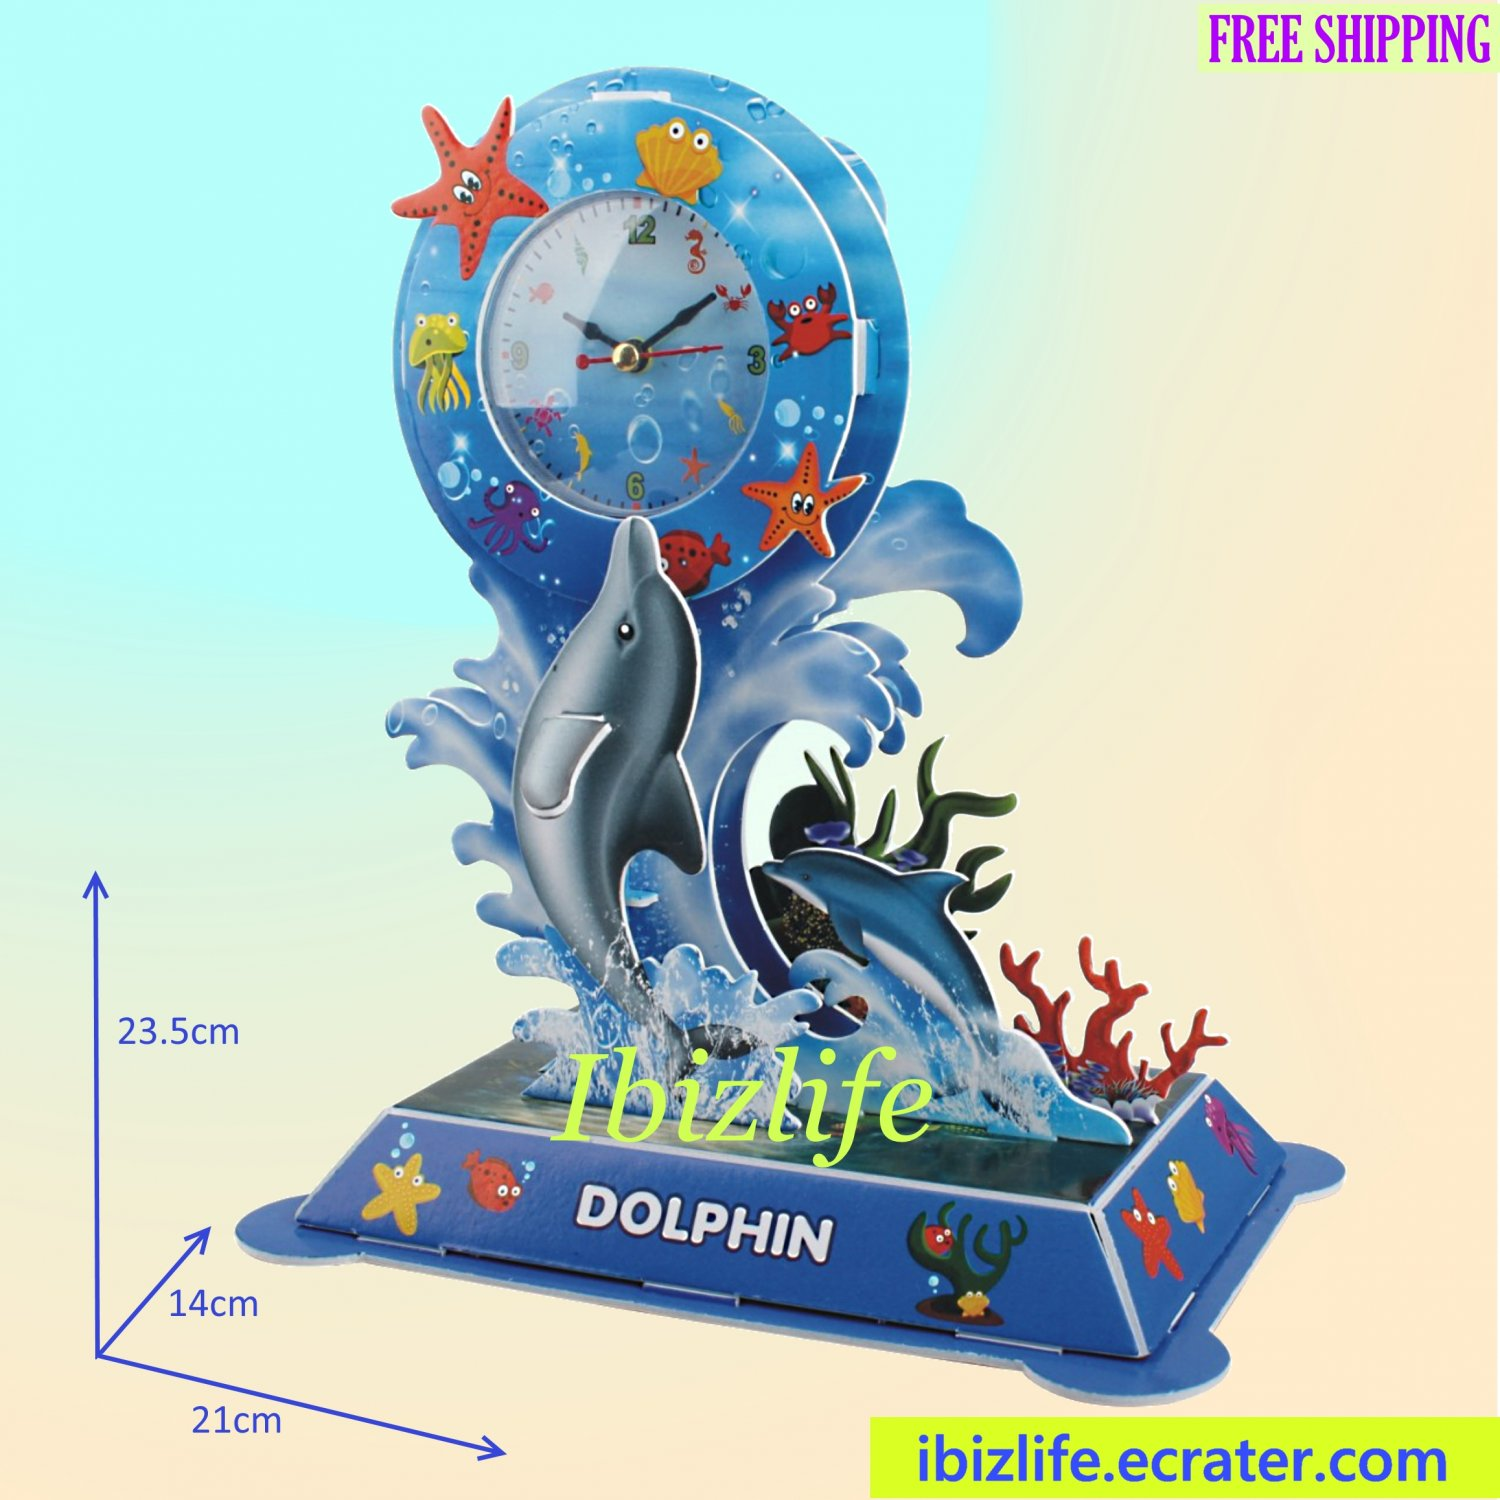 Exquisite Dolphin Desktop Table Clock 3D puzzle 19 pcs DIY model as decoration/ gift item (pc68)